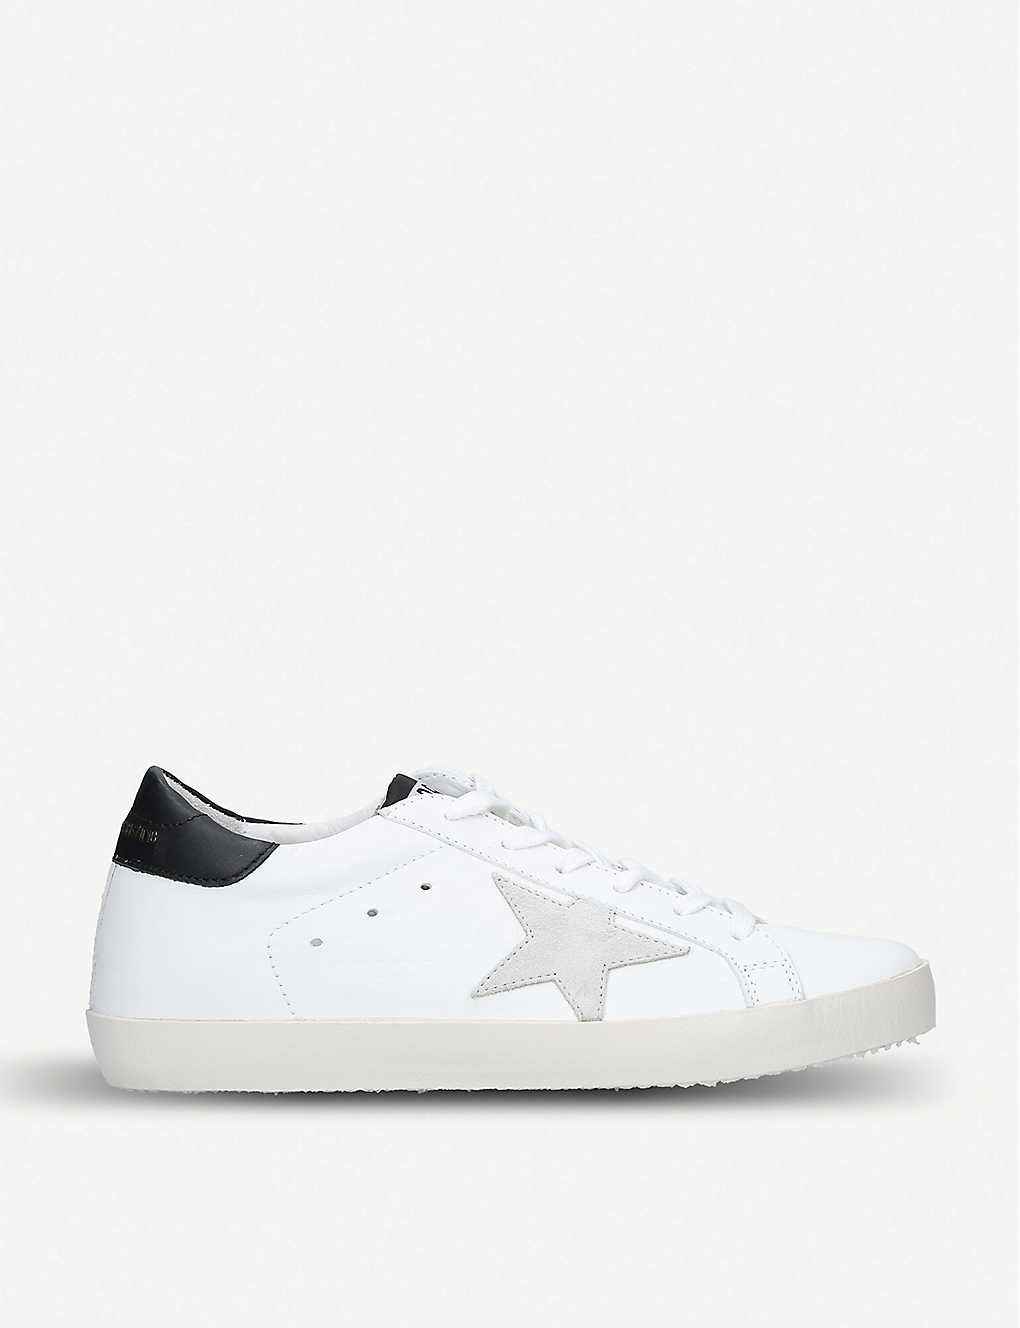 Superstar e73 leather trainers